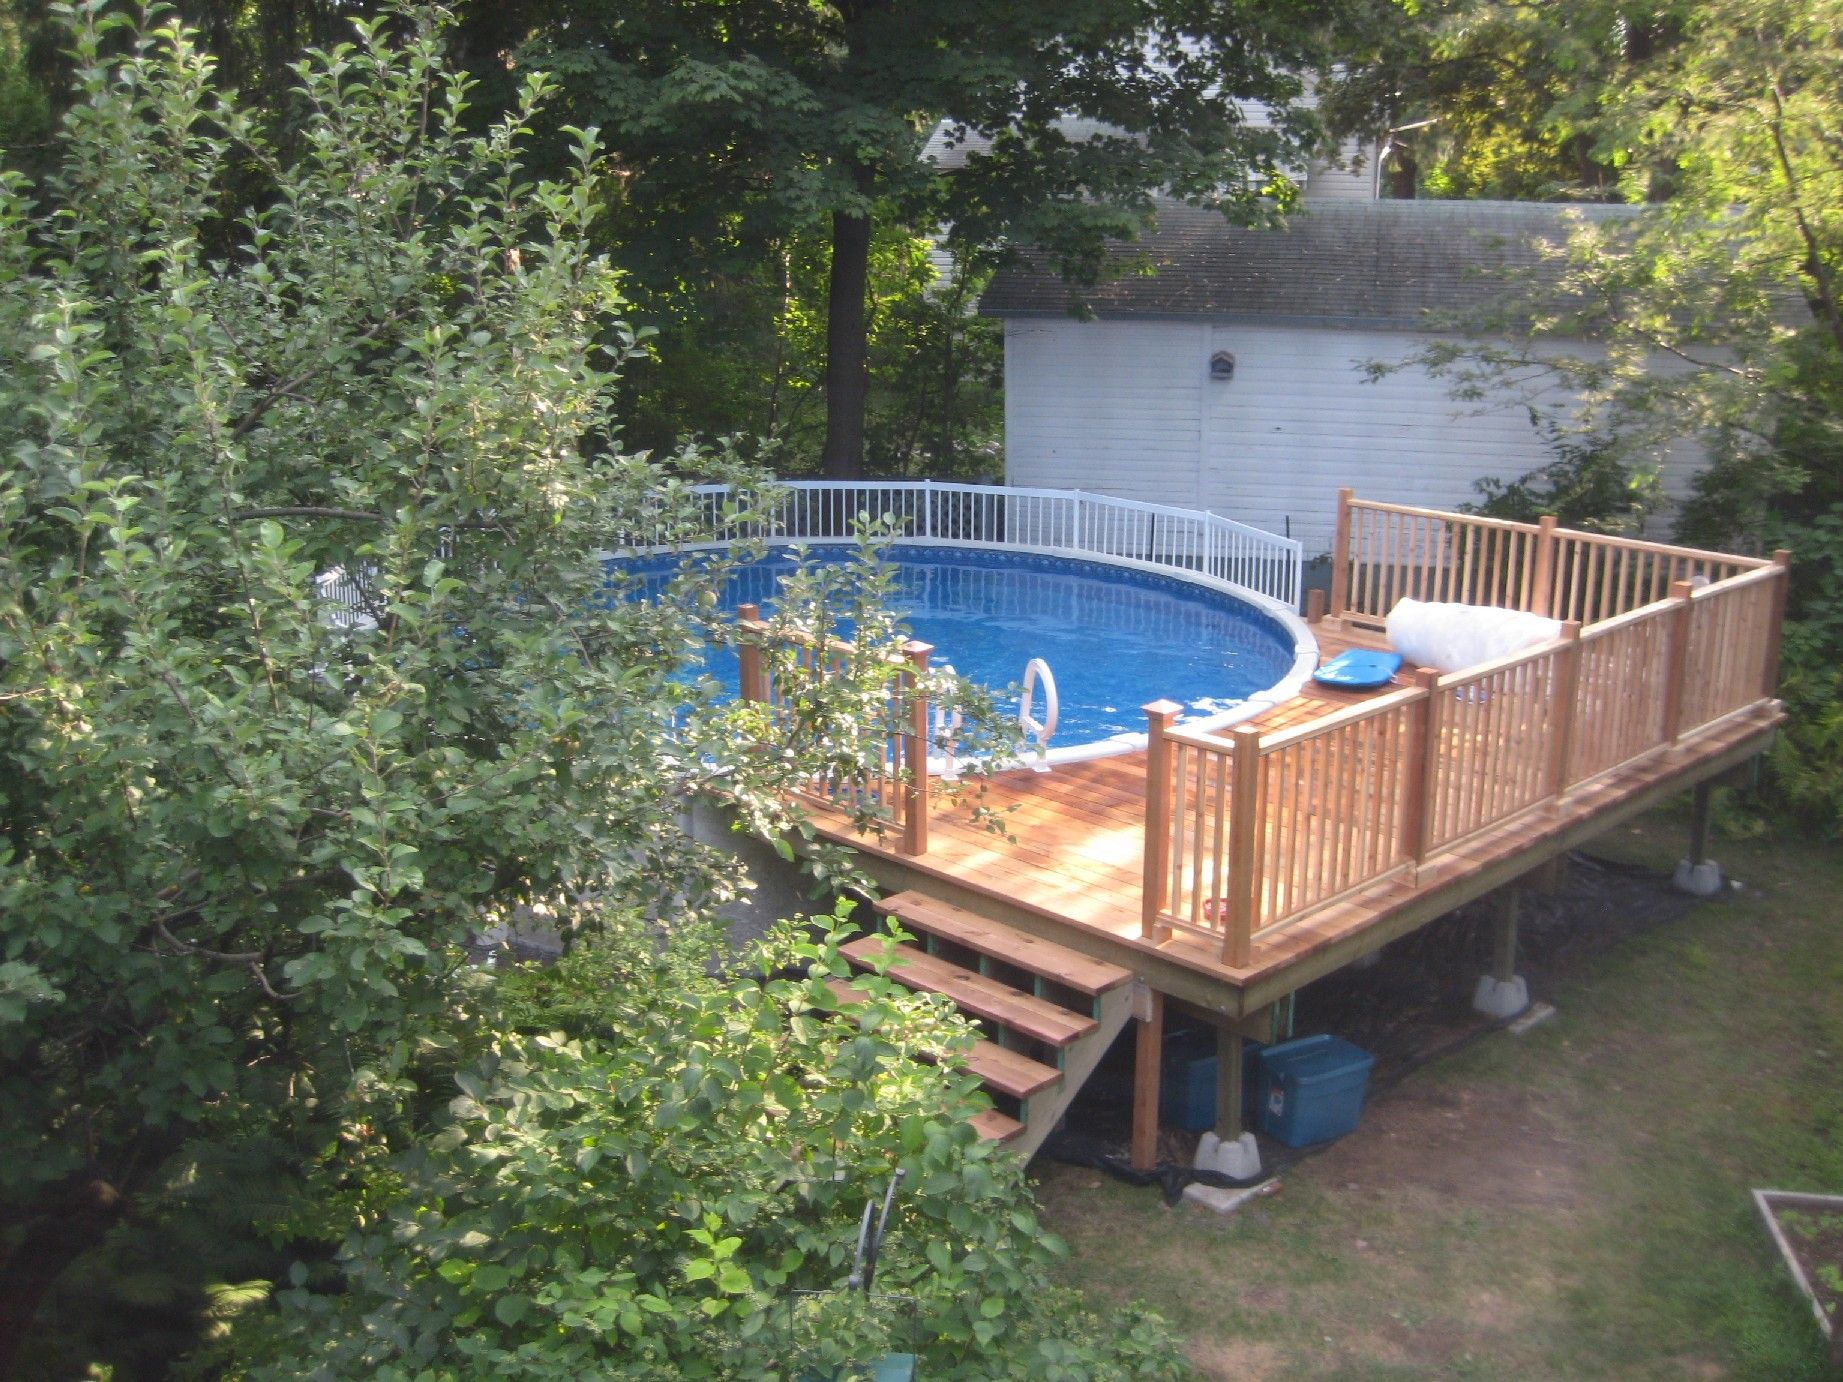 24 Round Above Ground Pool Exterior Pool Deck Plans Round How To Build Pool Deck Plans